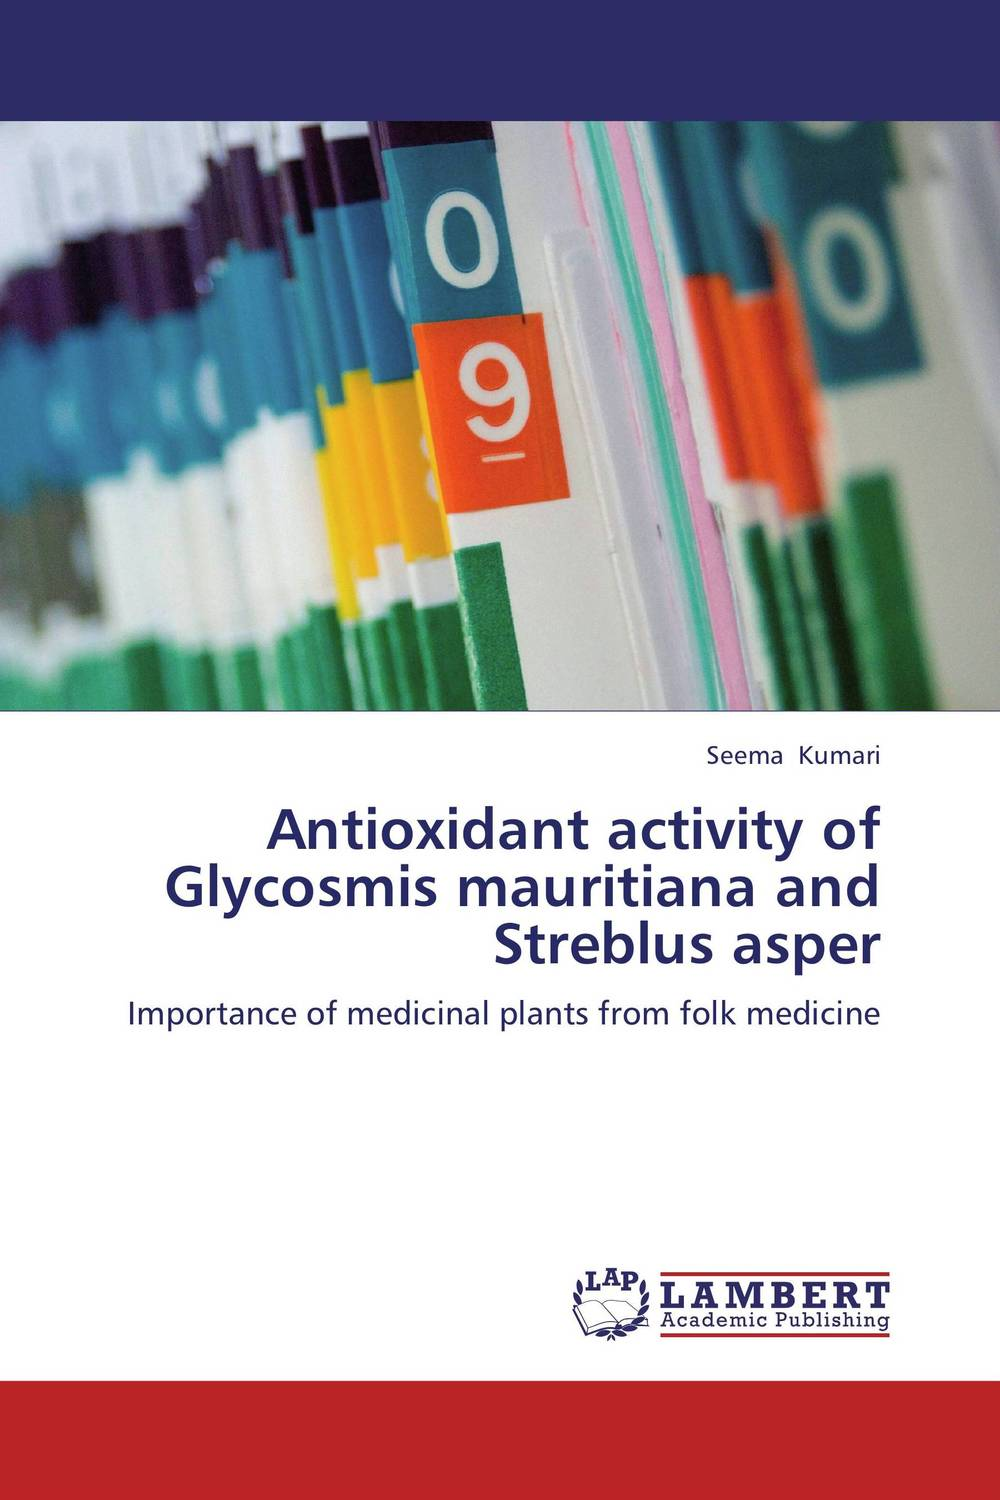 Antioxidant activity of Glycosmis mauritiana and Streblus asper effect of medicinal plant extracts on the viability of protoscoleces